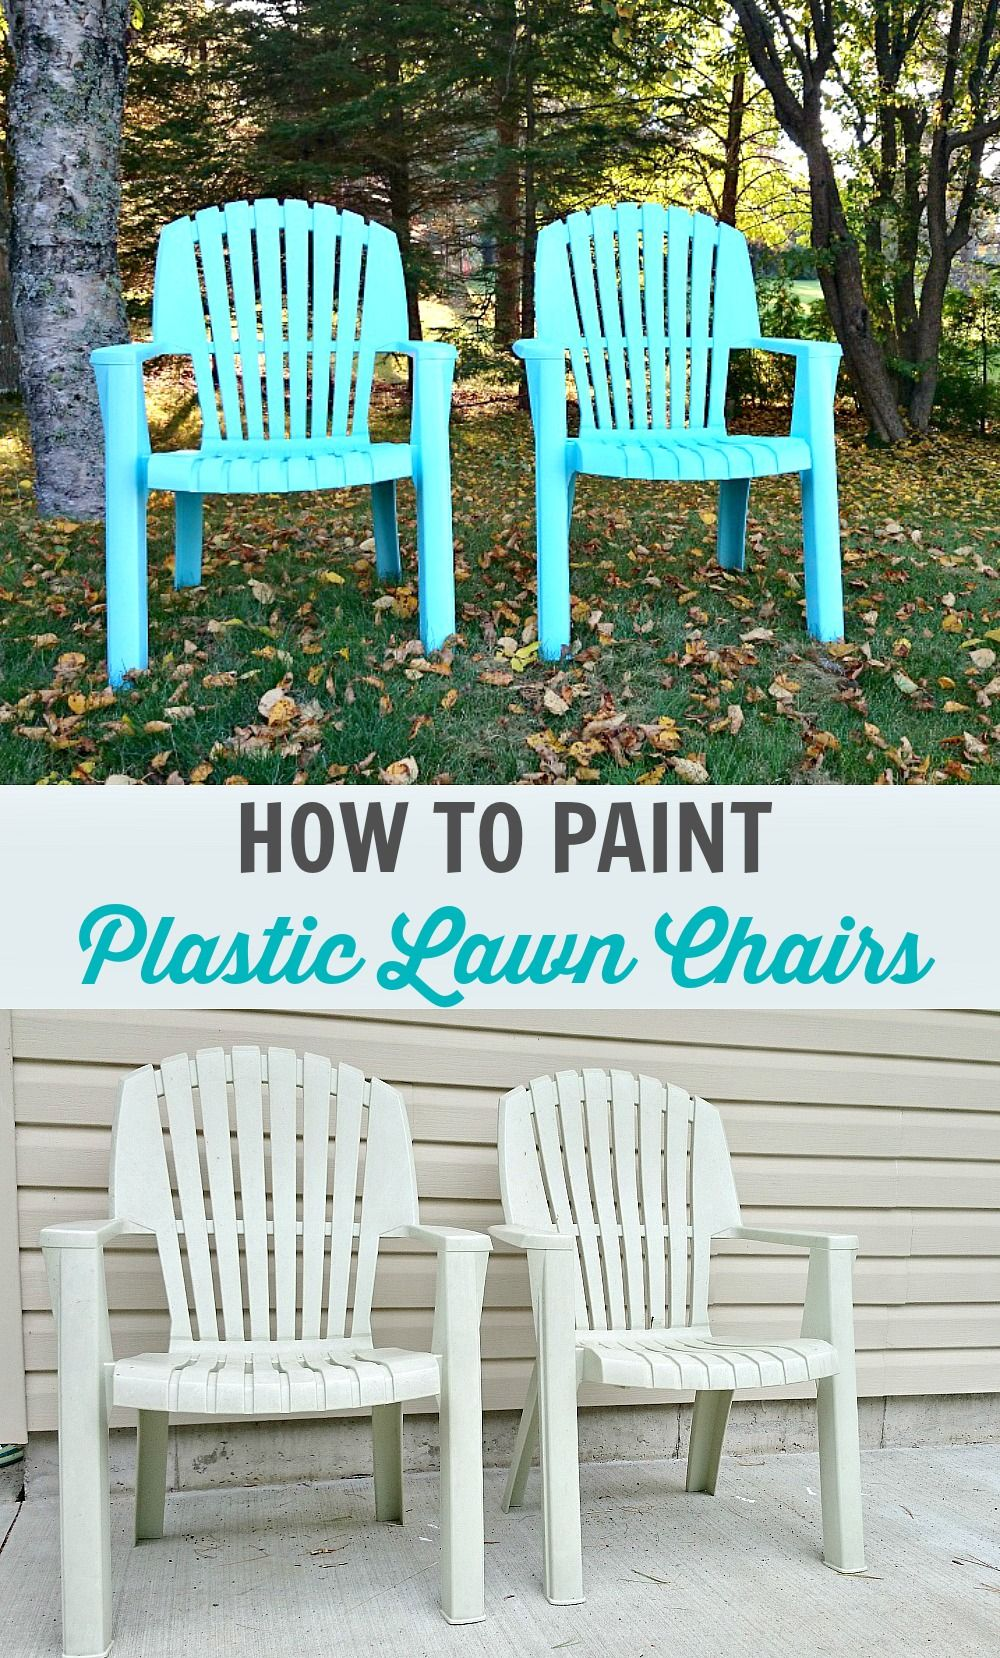 How To Paint Plastic Chairs Quinn Swivel Chair Spray Lawn Furniture Inspiration Tips Tricks And What Use By Danslelakehouse